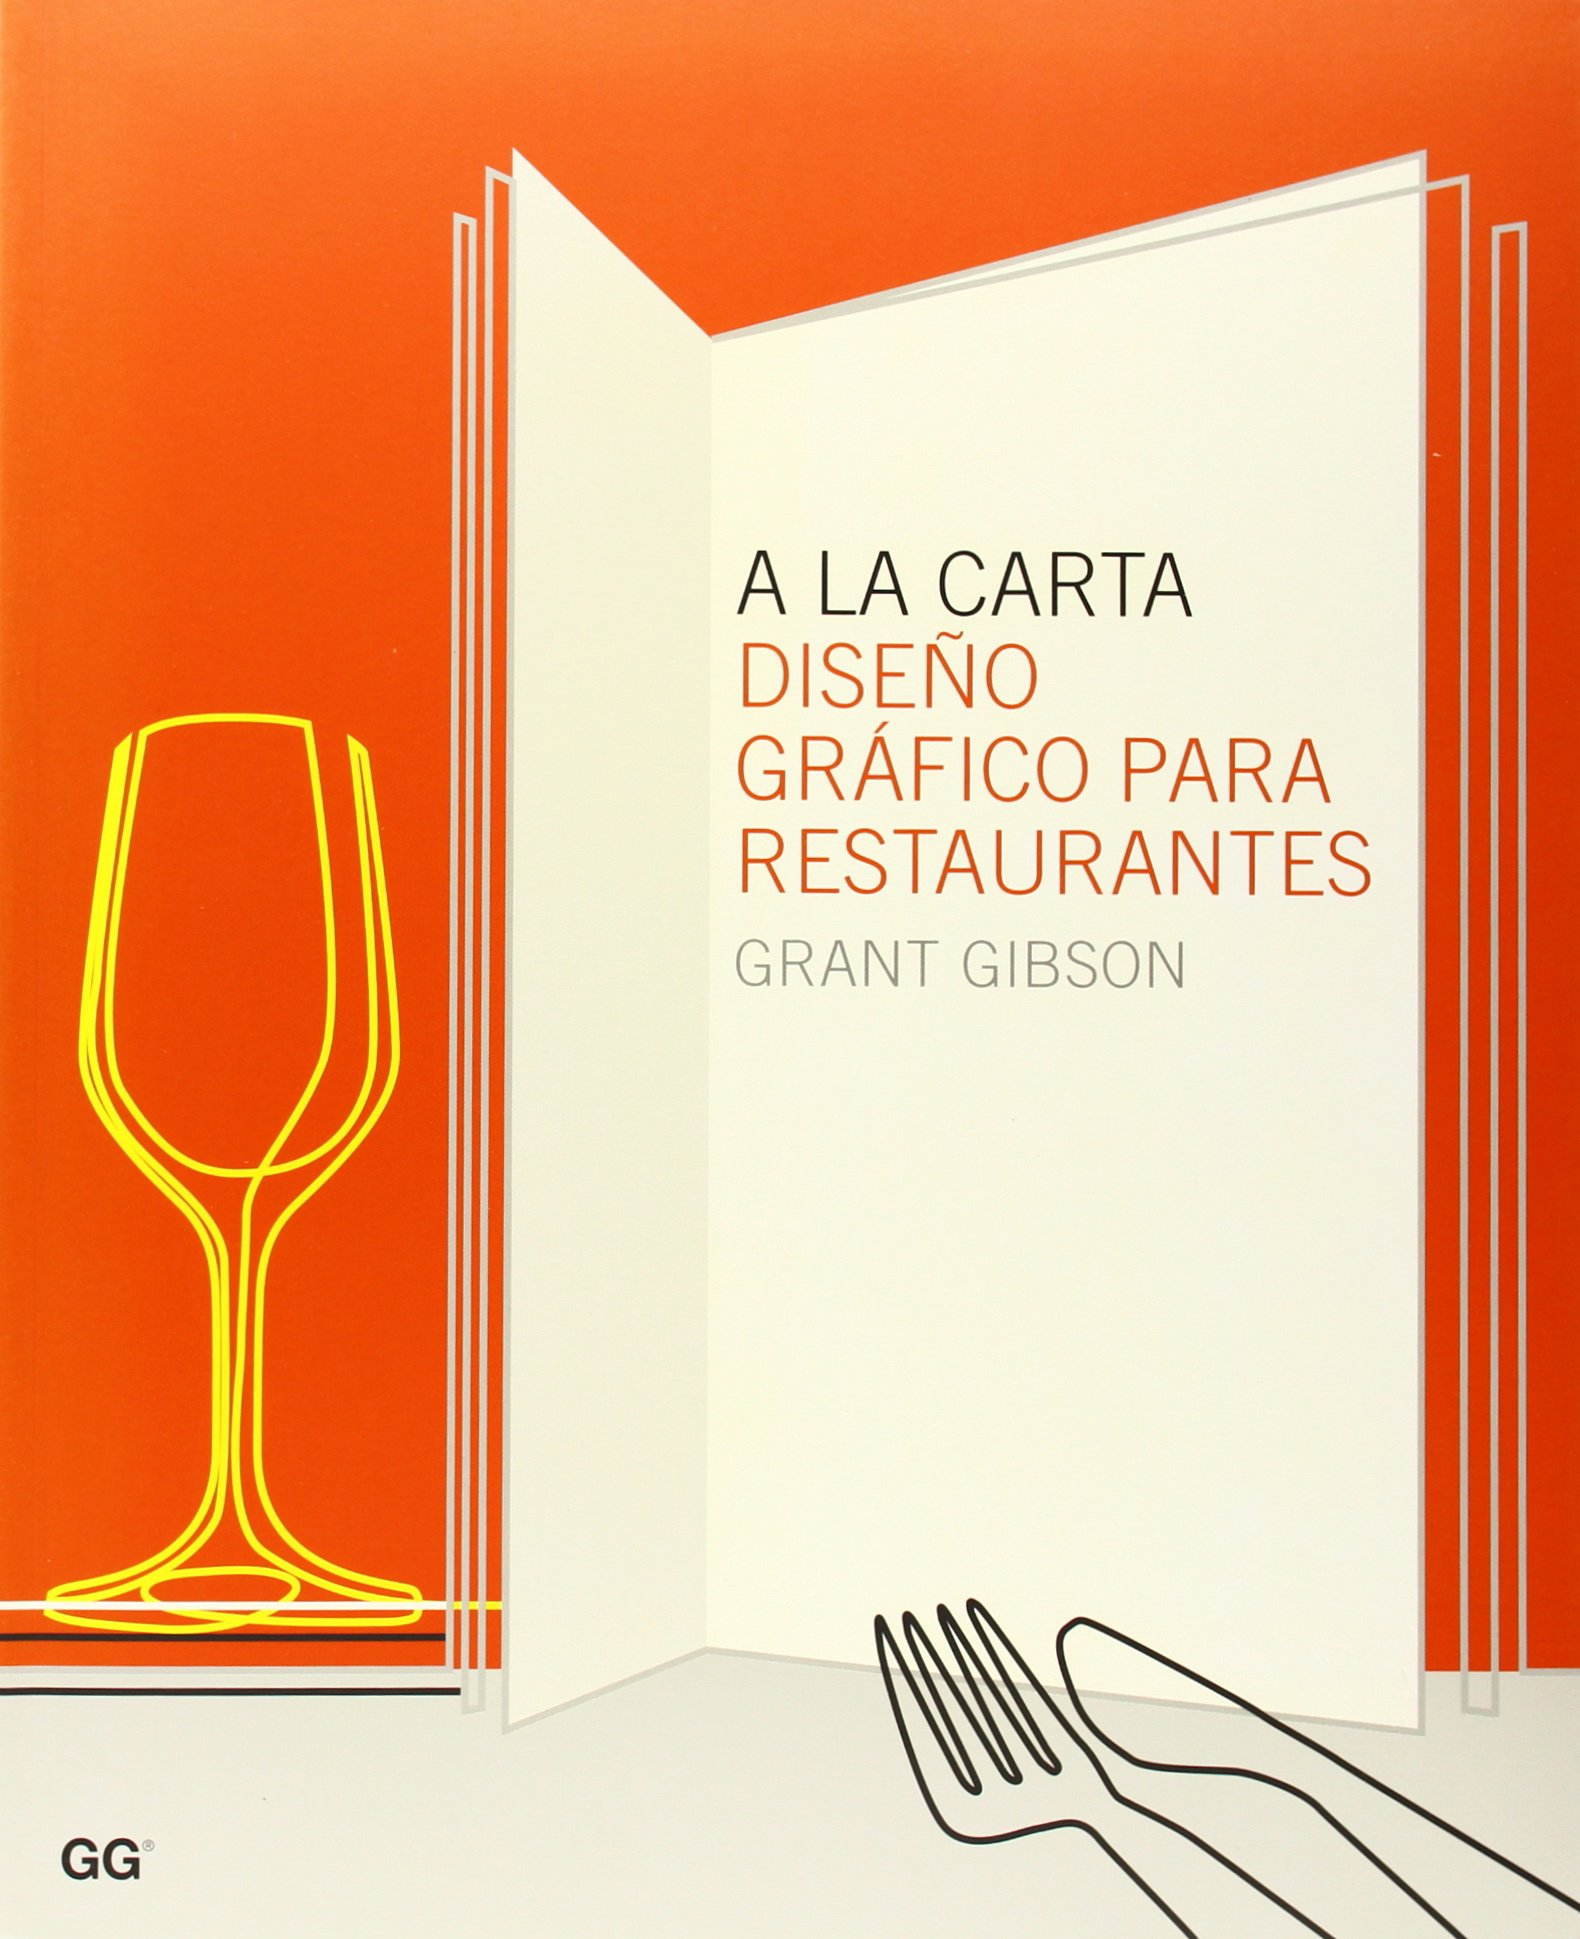 A la carta - diseño grafico para restaurantes: Amazon.es ...